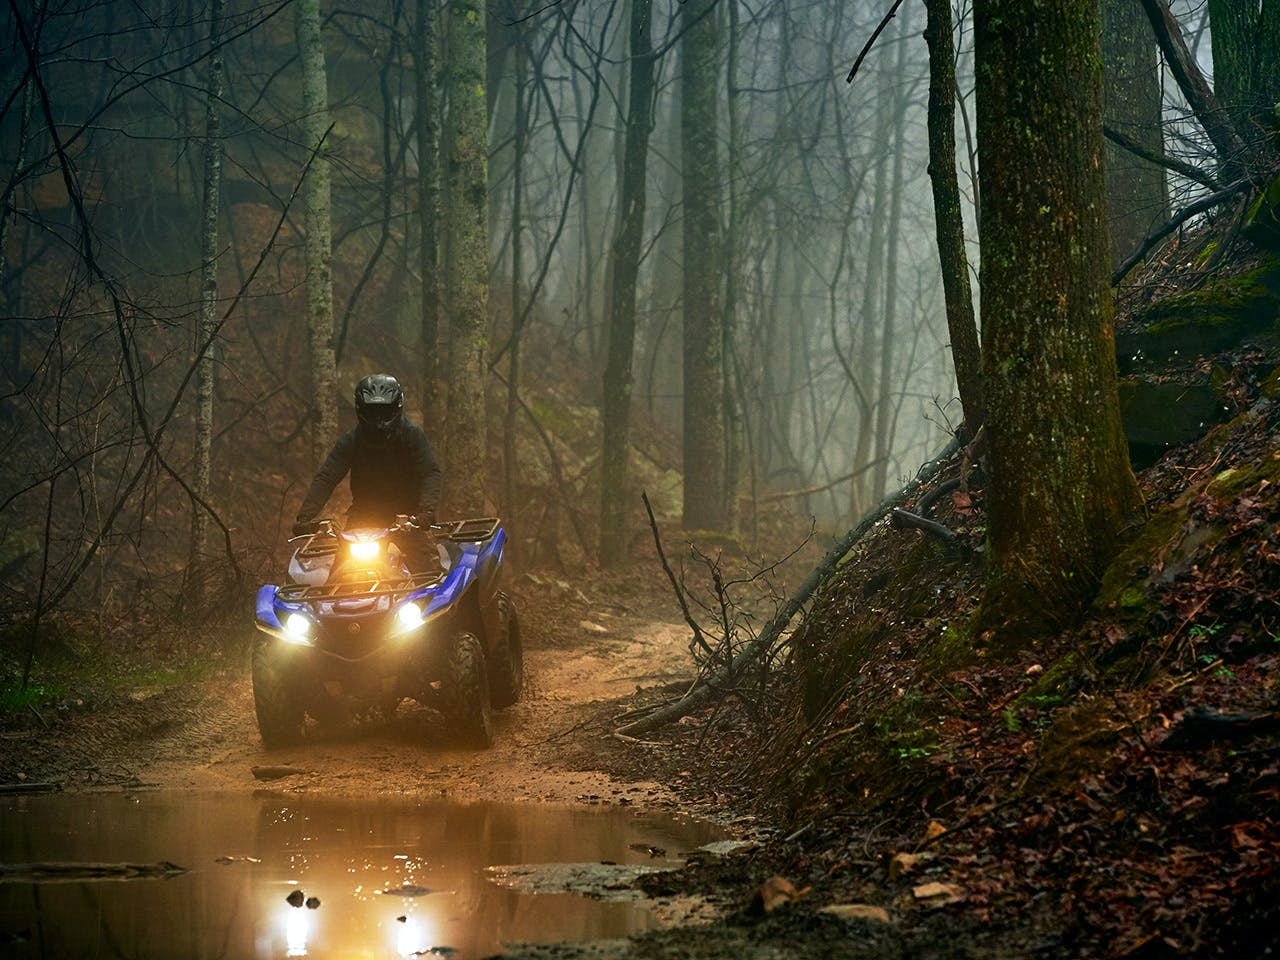 Yamaha Grizzly 700 in Steel Blue colour riding through the forest